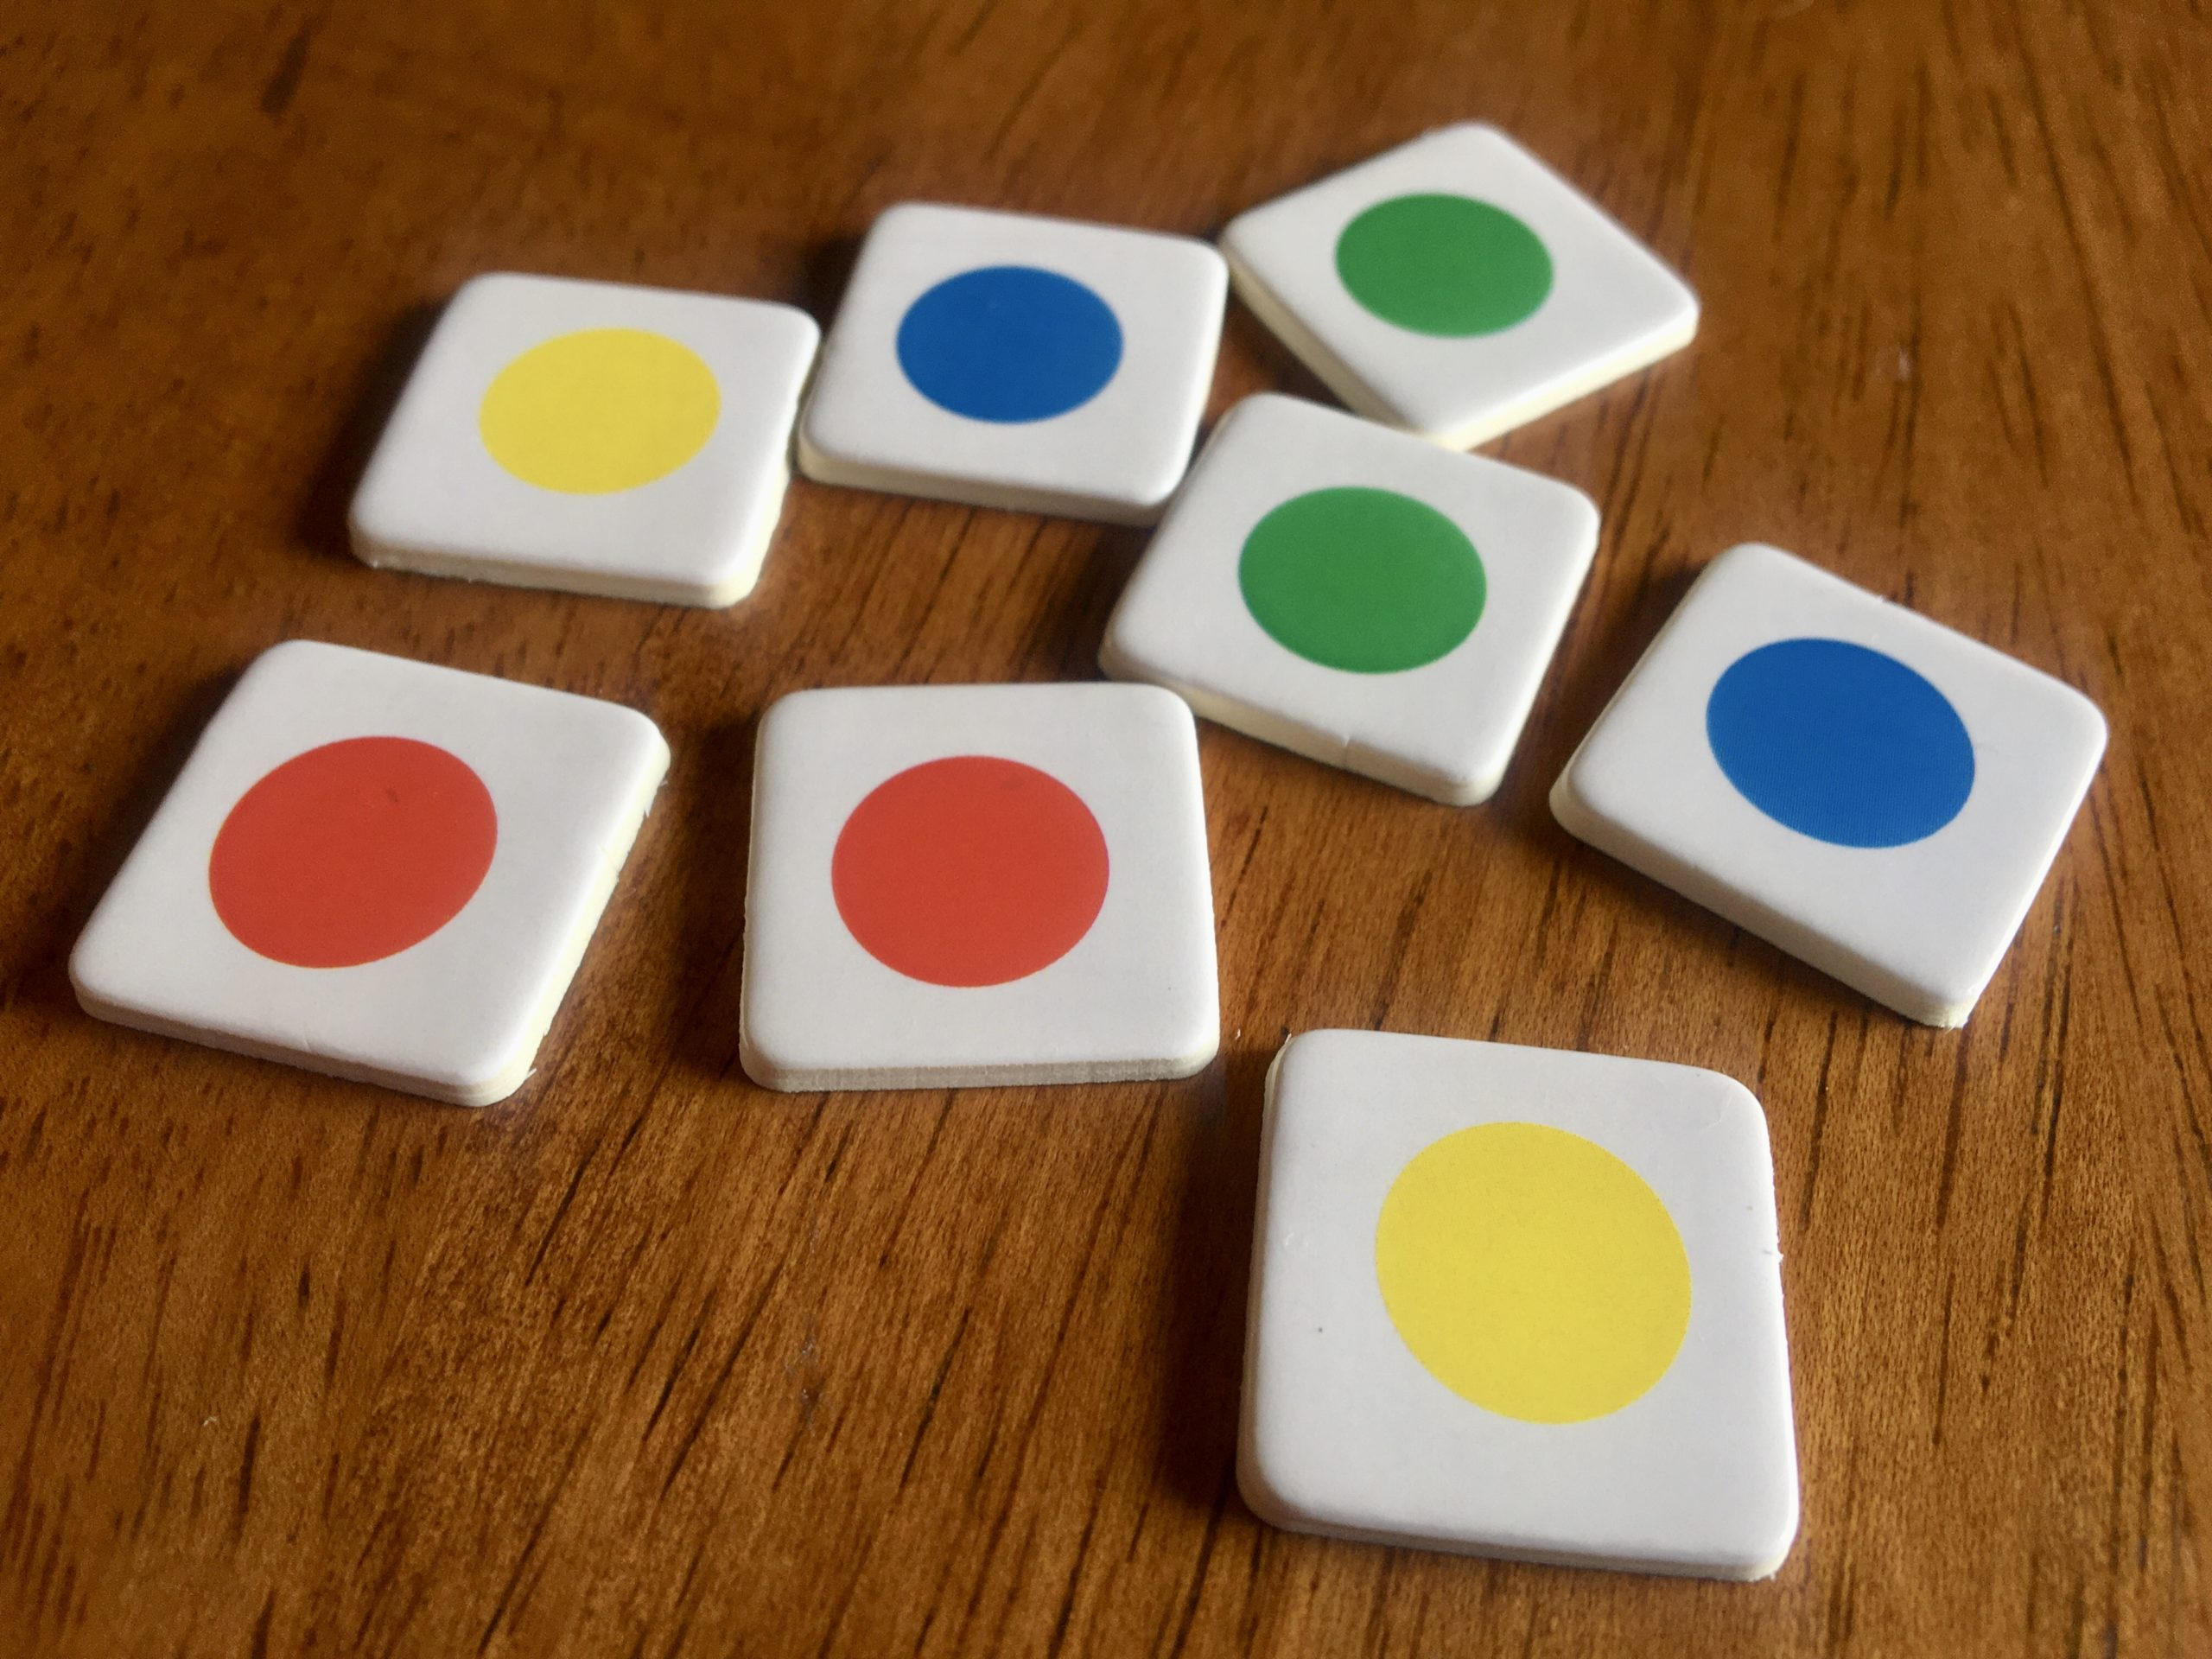 Dareithmetic-player-tokens-scaled-1.jpg